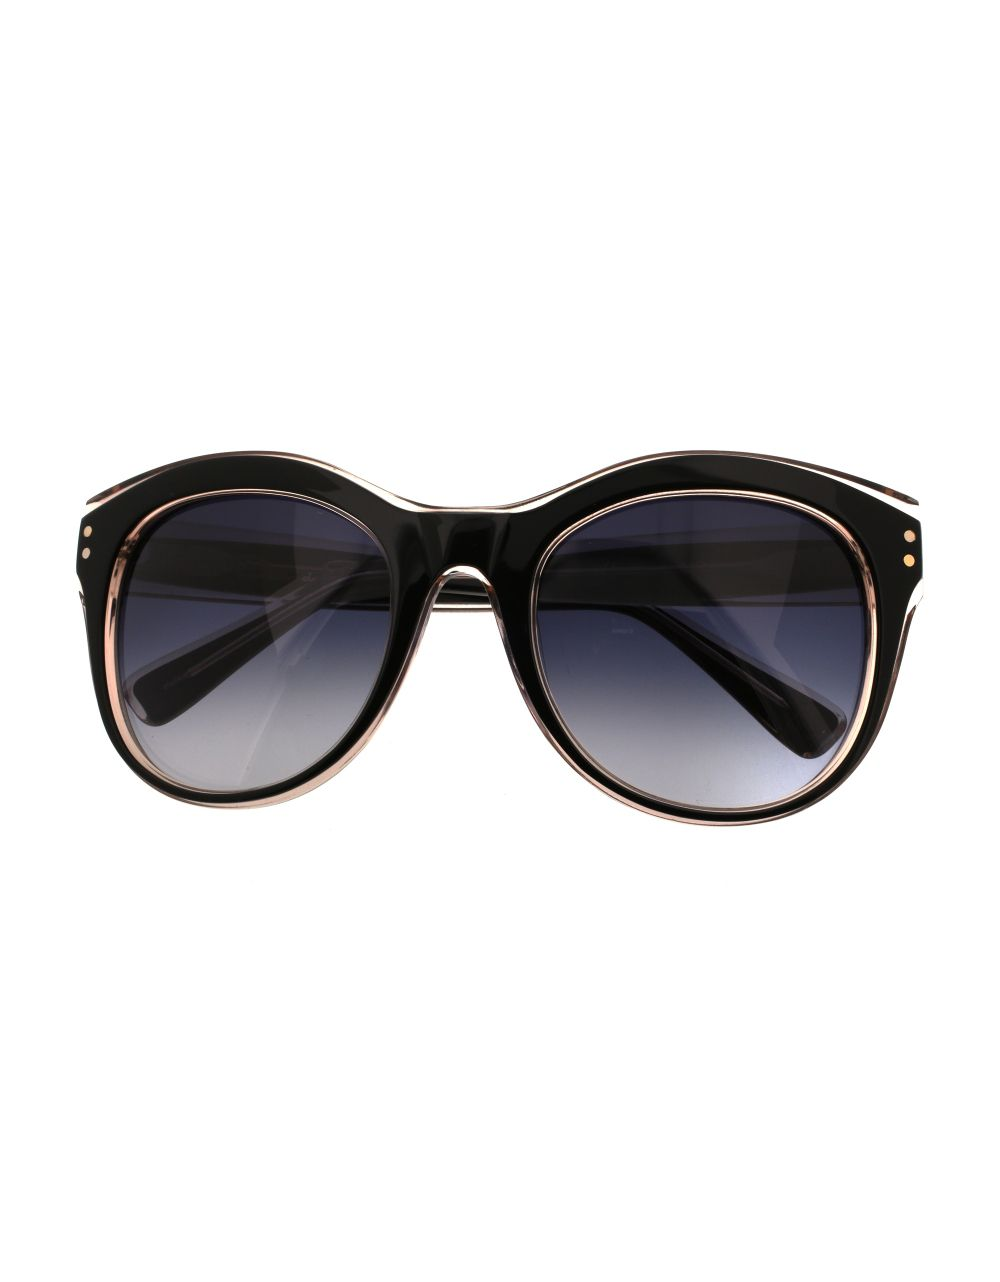 Oscar de la Renta, 54MM Round Cats Eye Sunglasses image: lordandtaylor.com